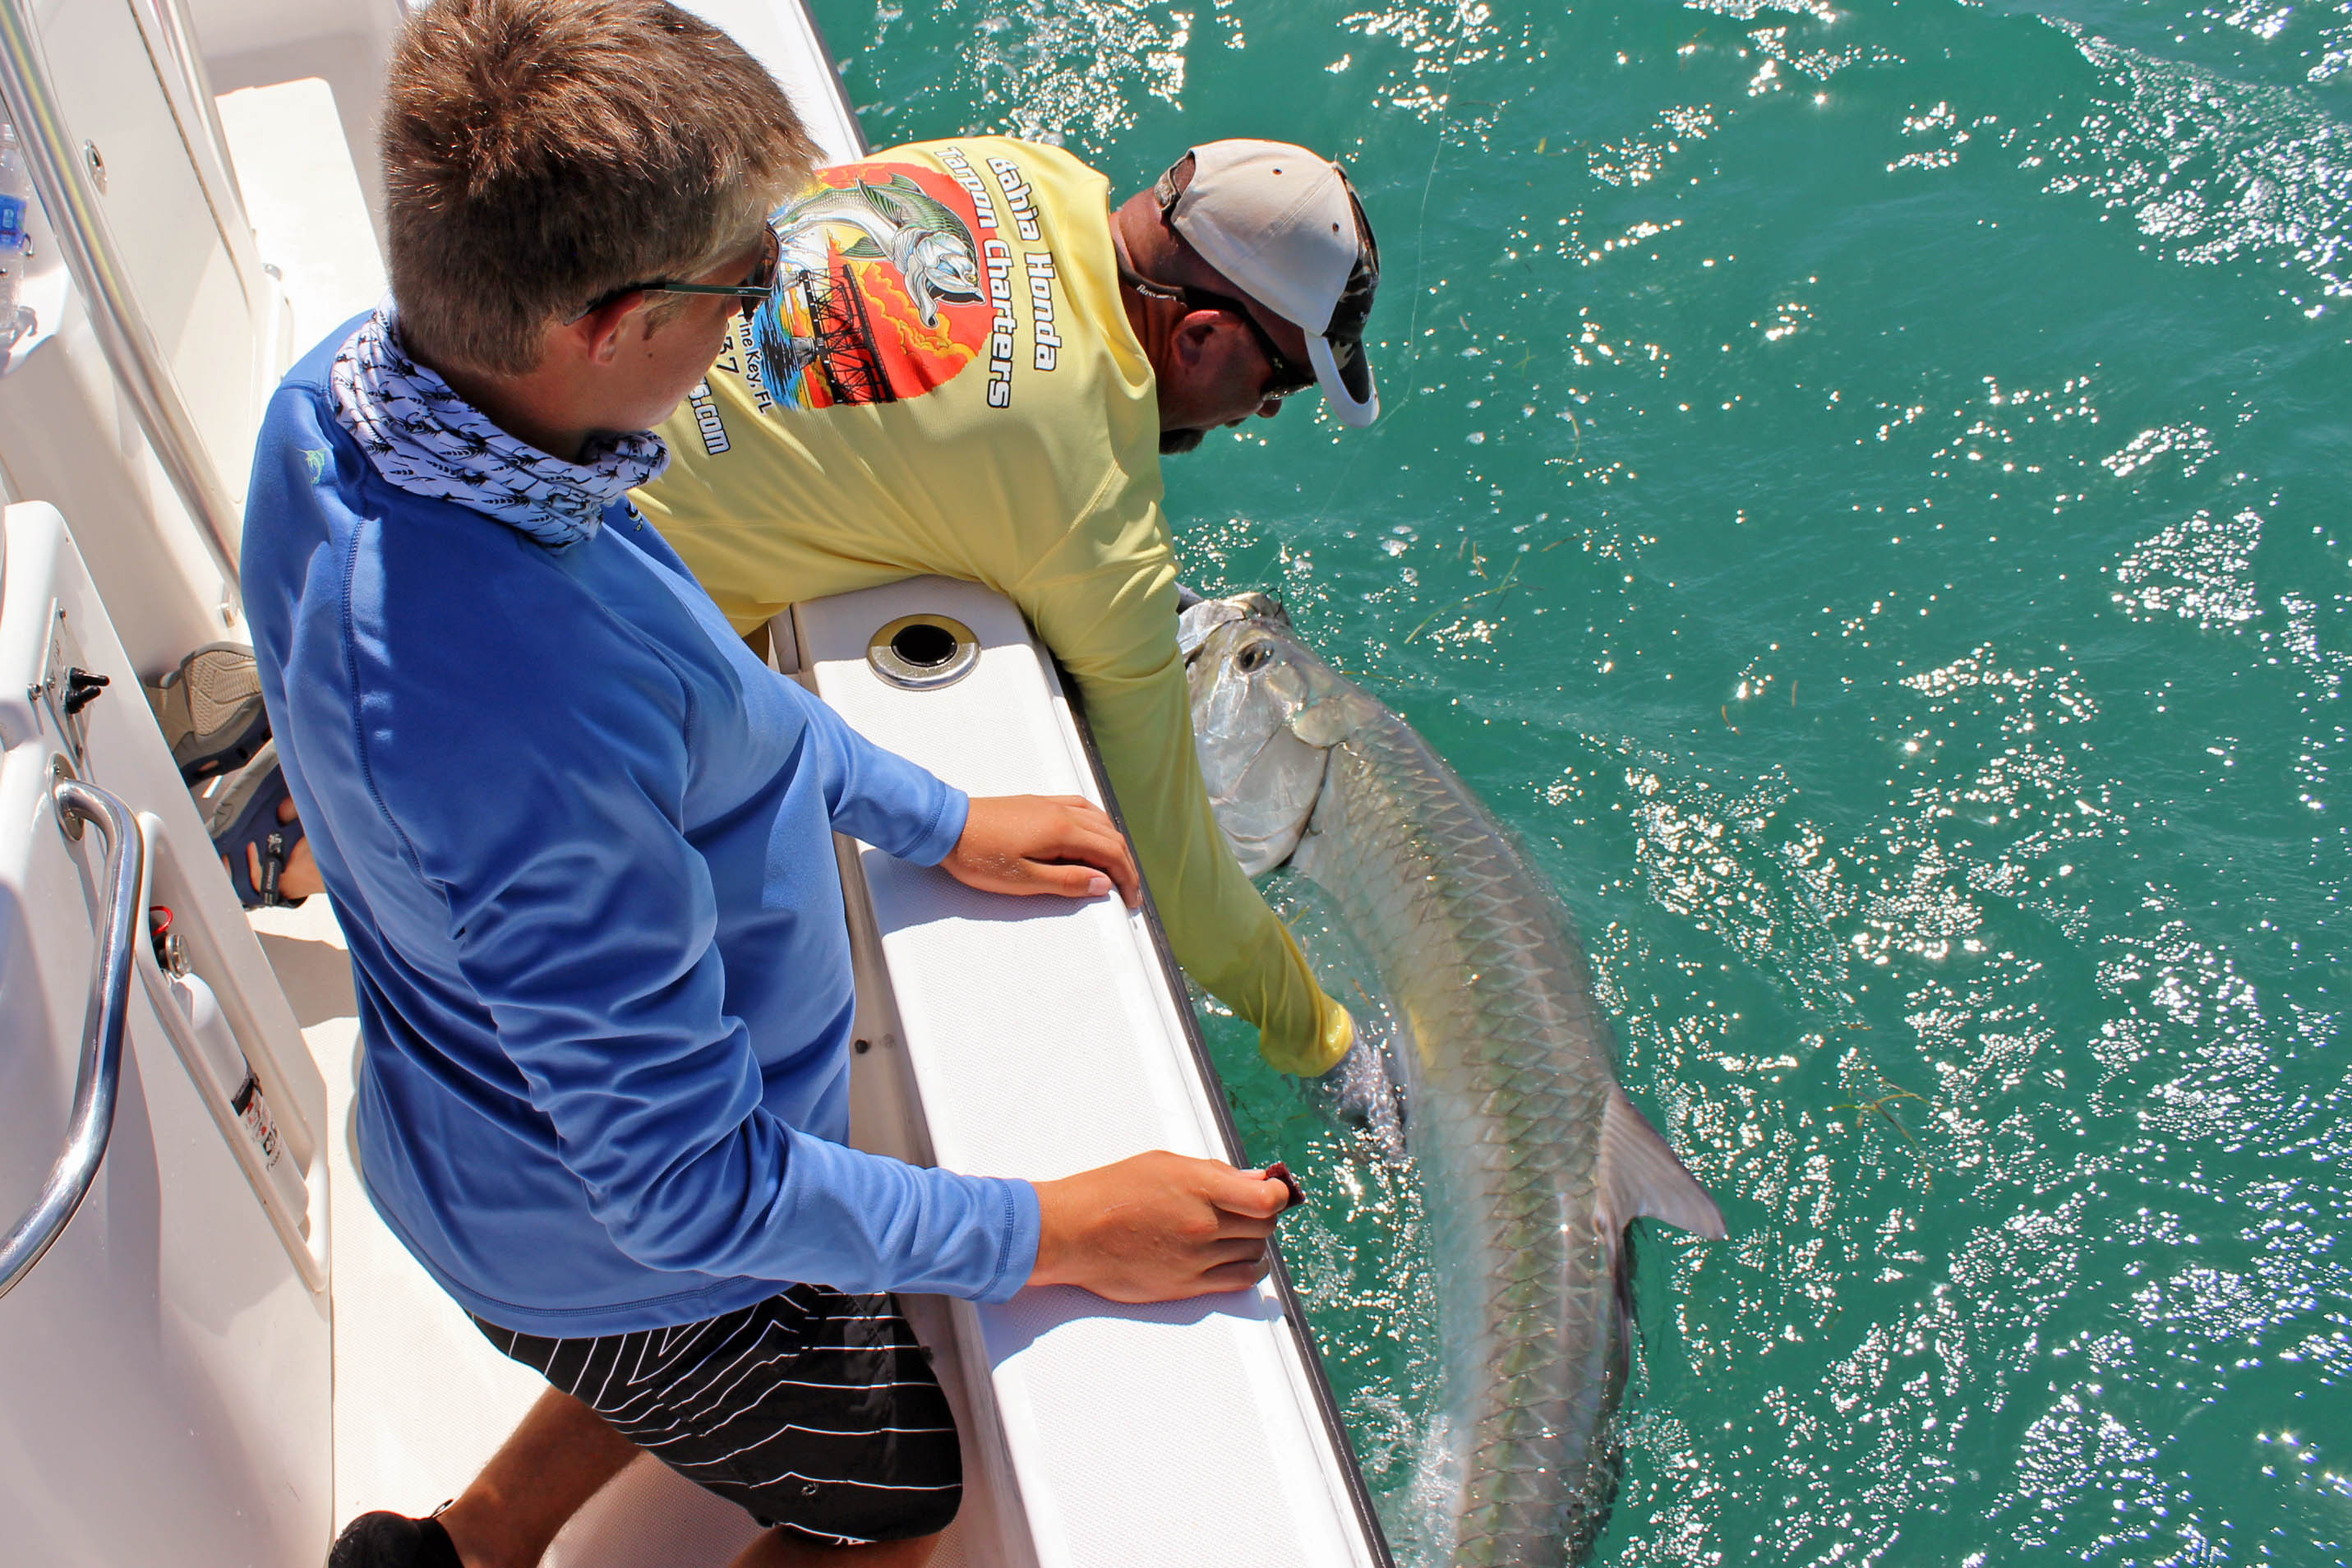 Florida keys tarpon fishing charters captain kevin Grubb Captain Pete Rapps